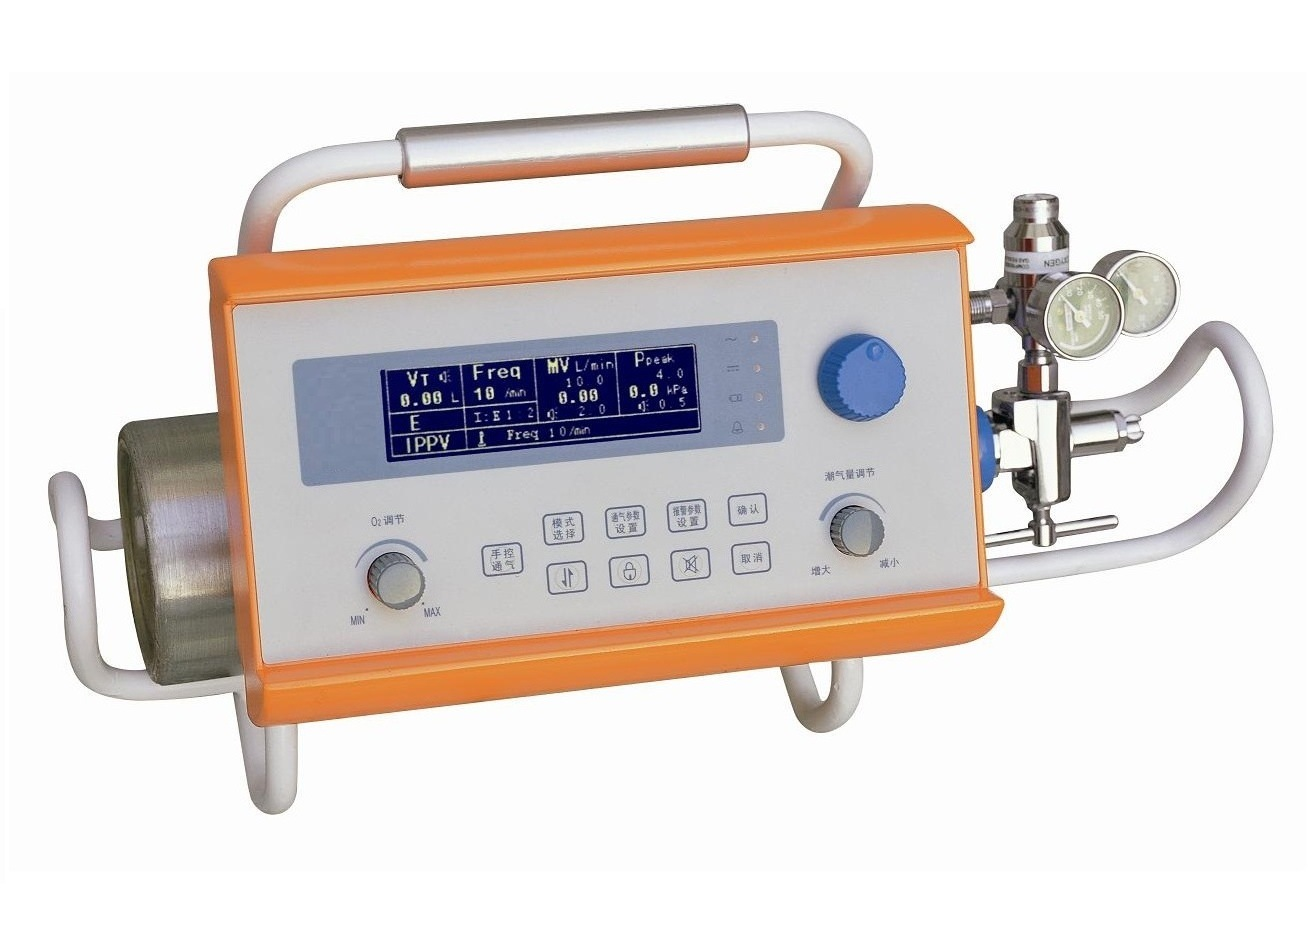 Hv-10 High Quality Portable Ventilator Machine Oxygen Breathing Apparatus